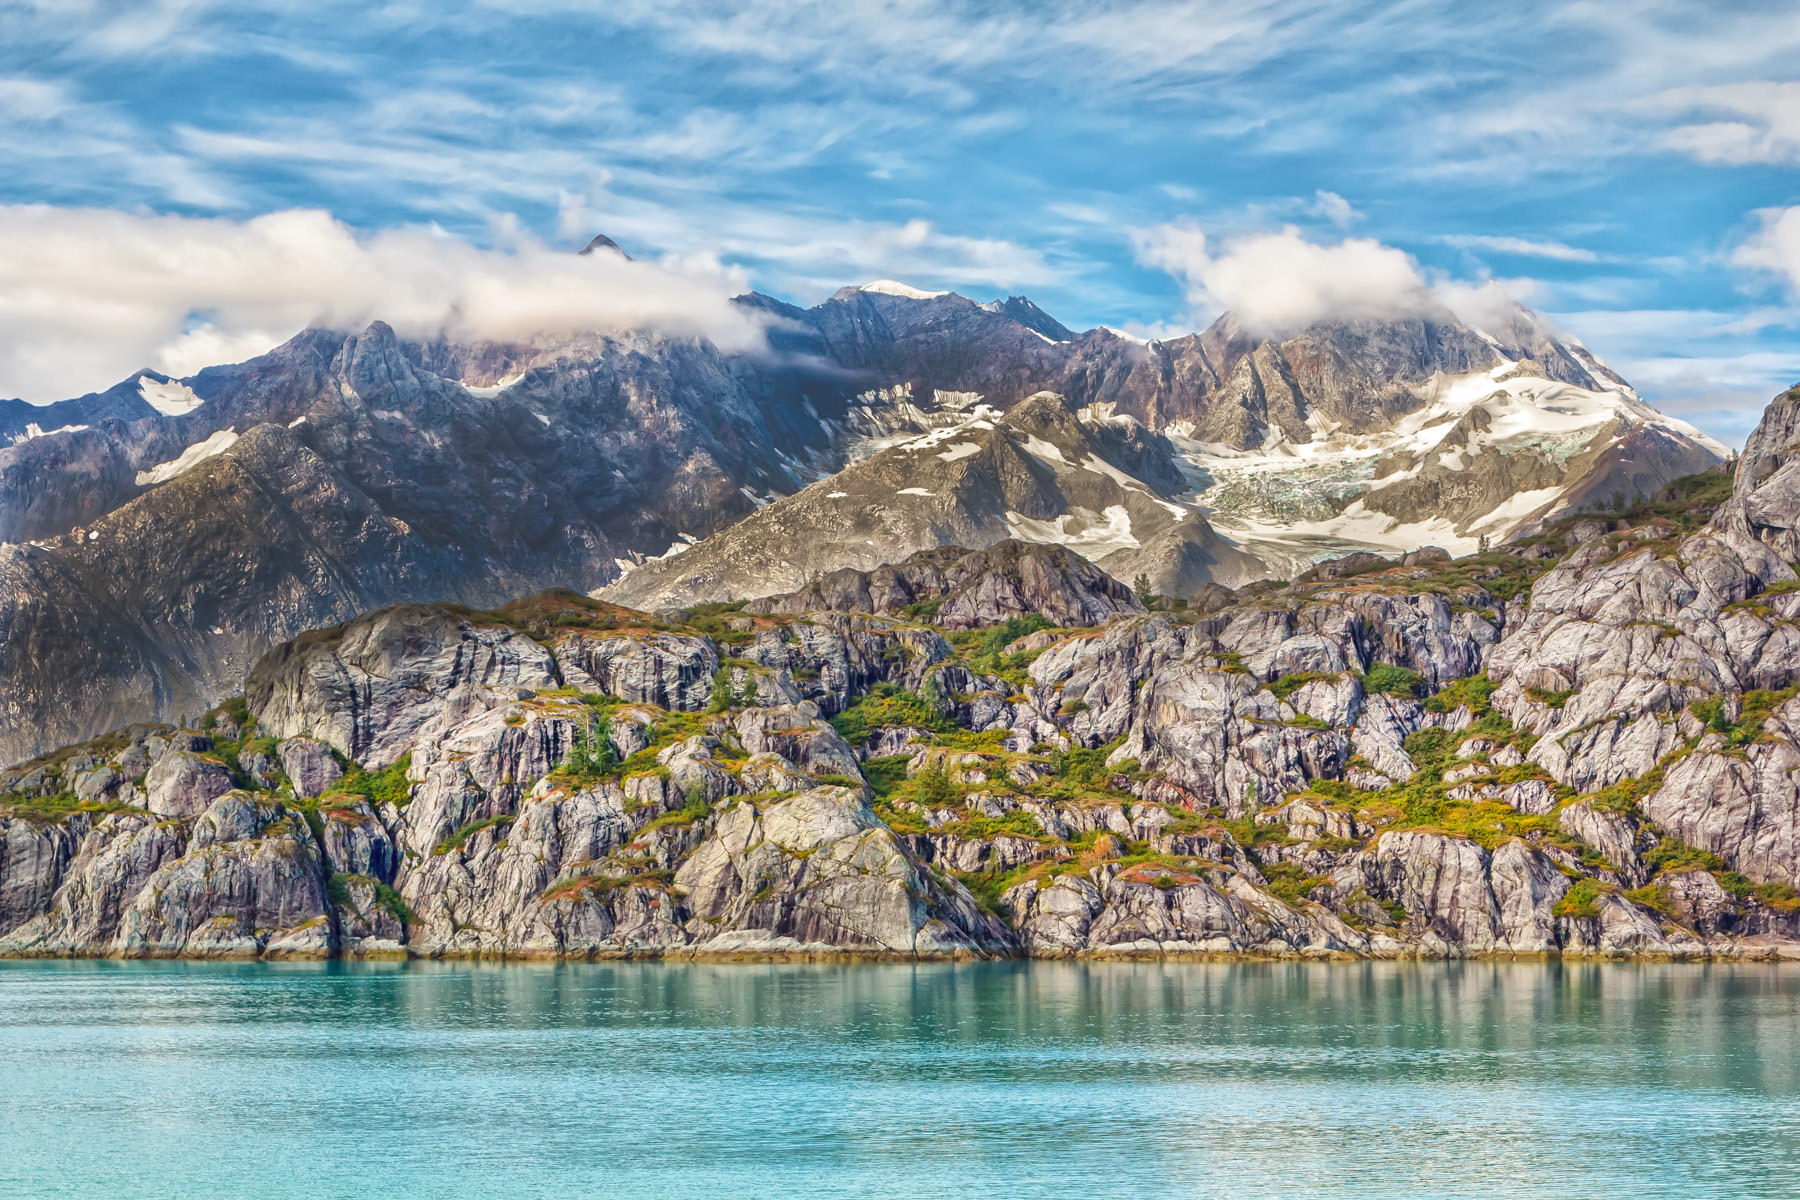 Jagged ice and snow-peaked mountains along the shores of Alaska's Glacier Bay National Park.